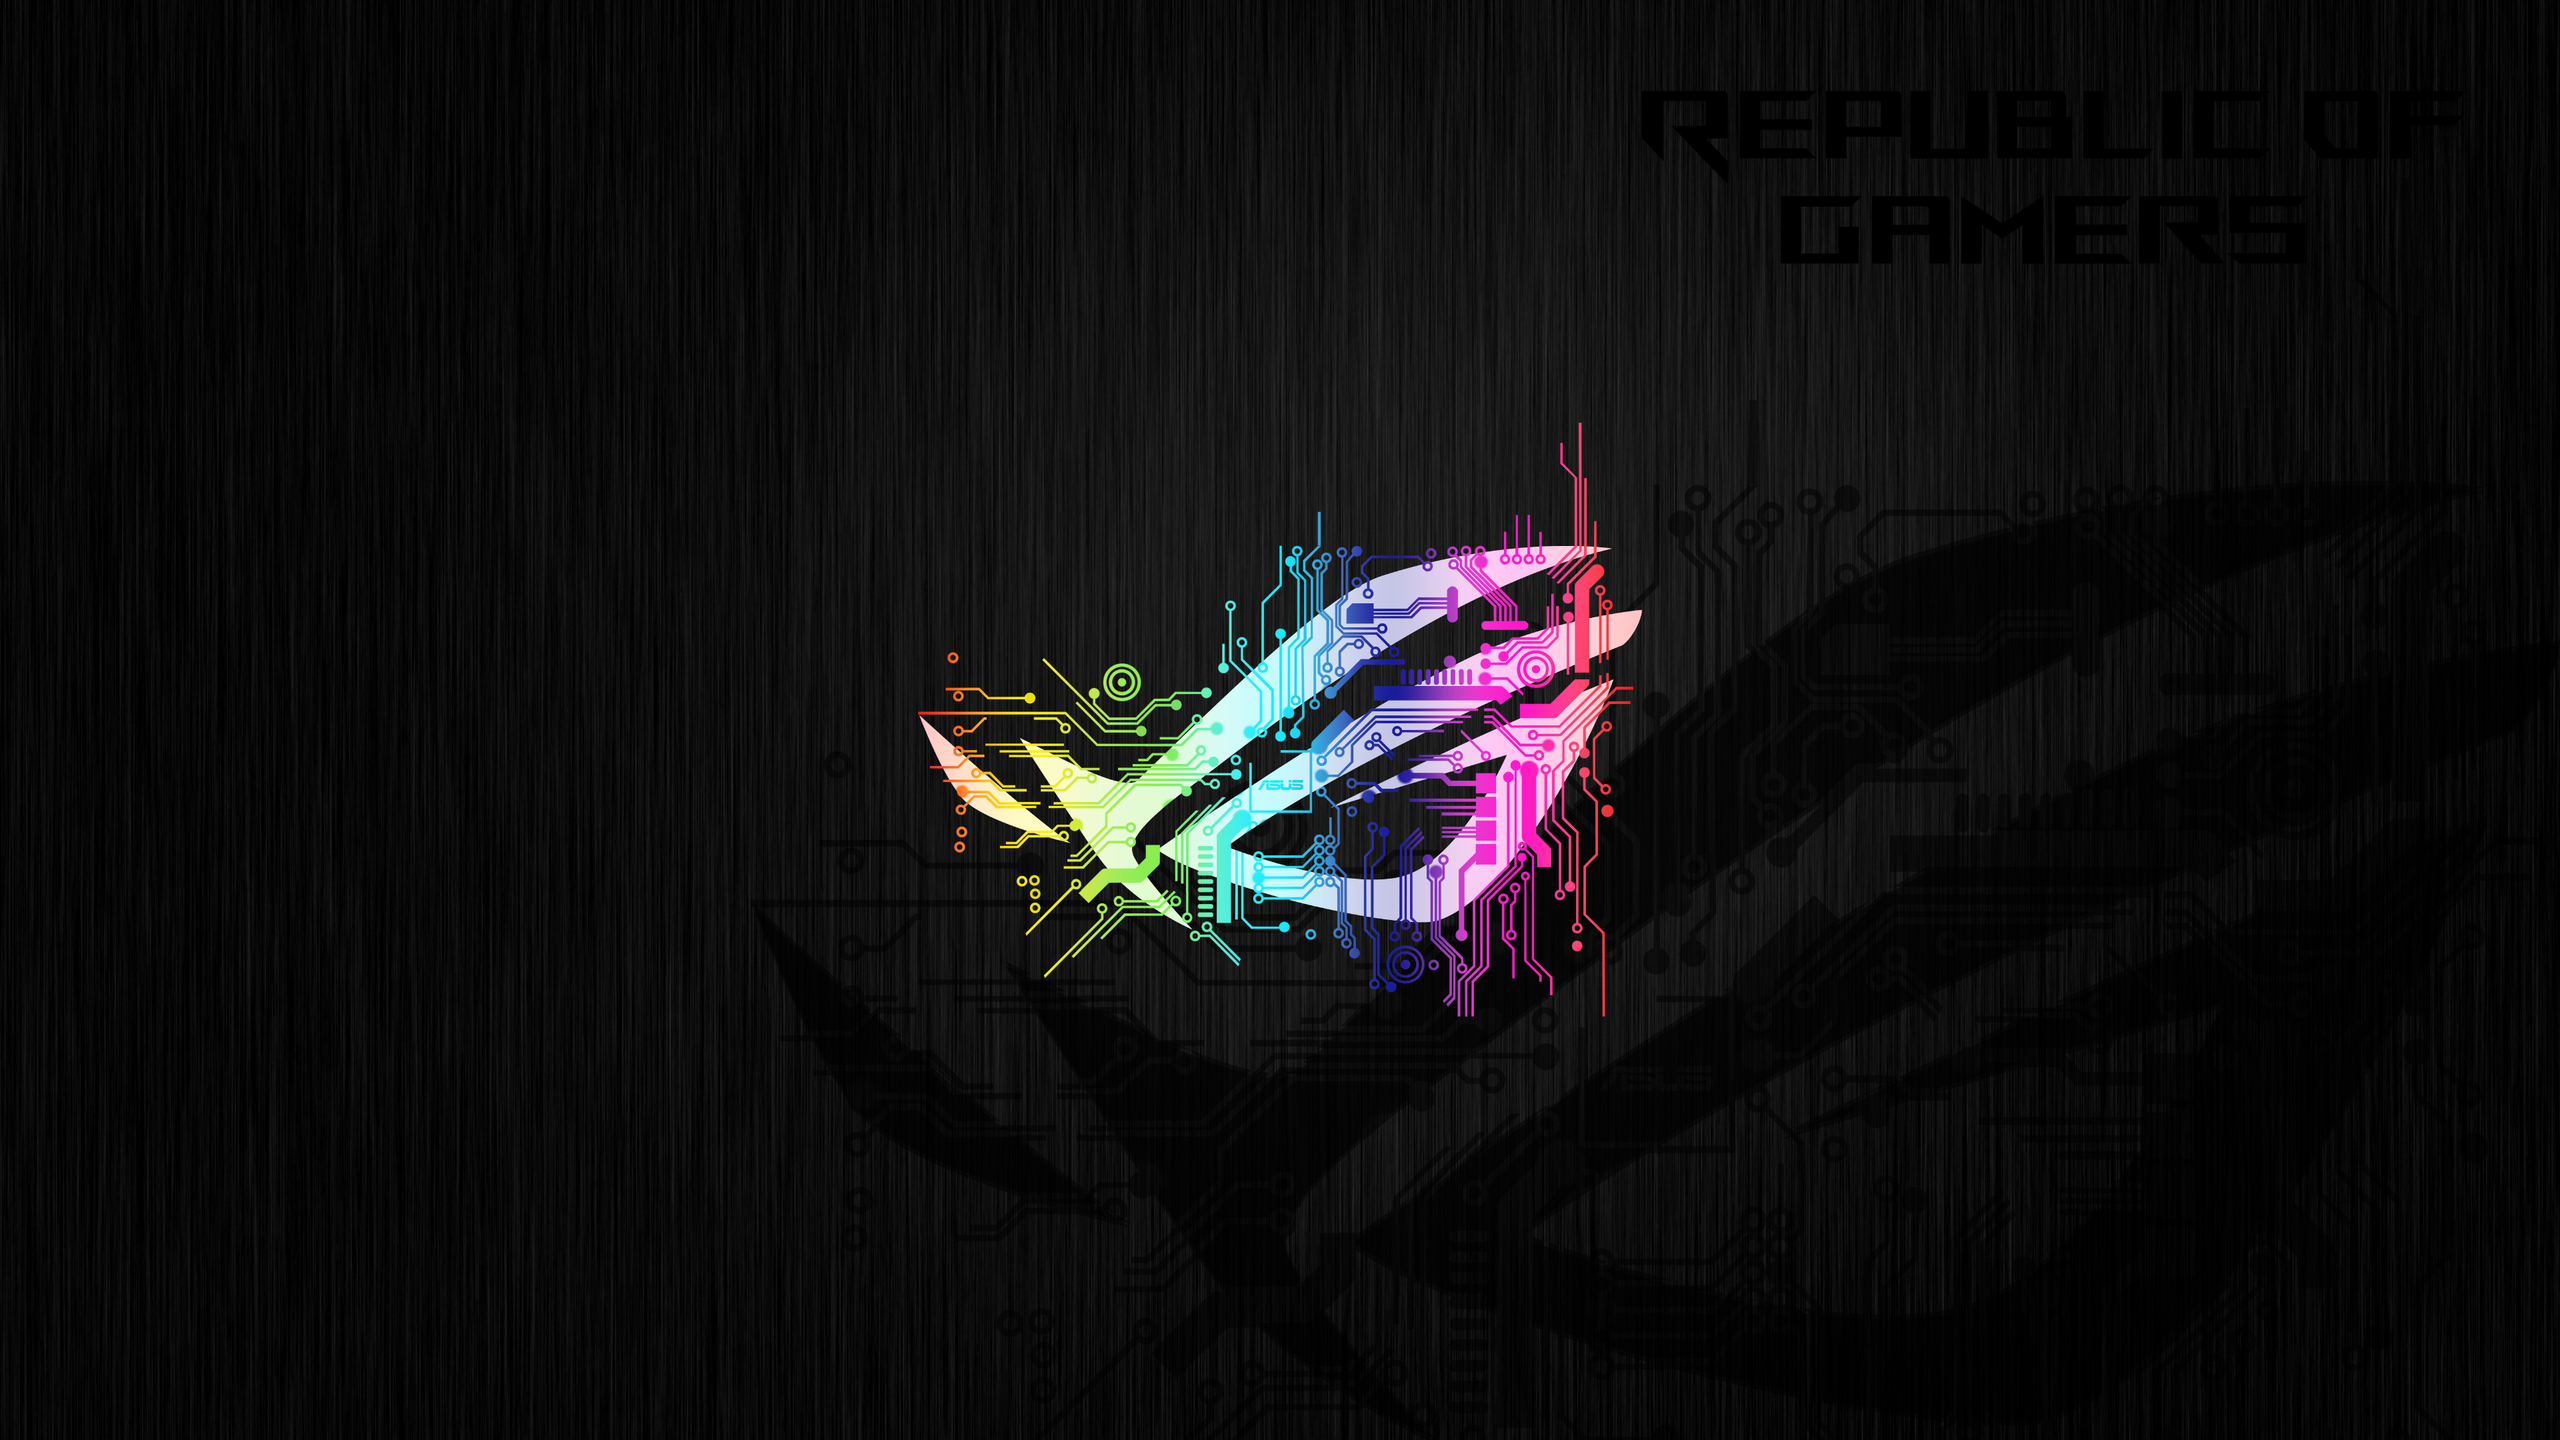 2560x1440 Republic Of Gamers Abstract Logo 4k 1440p